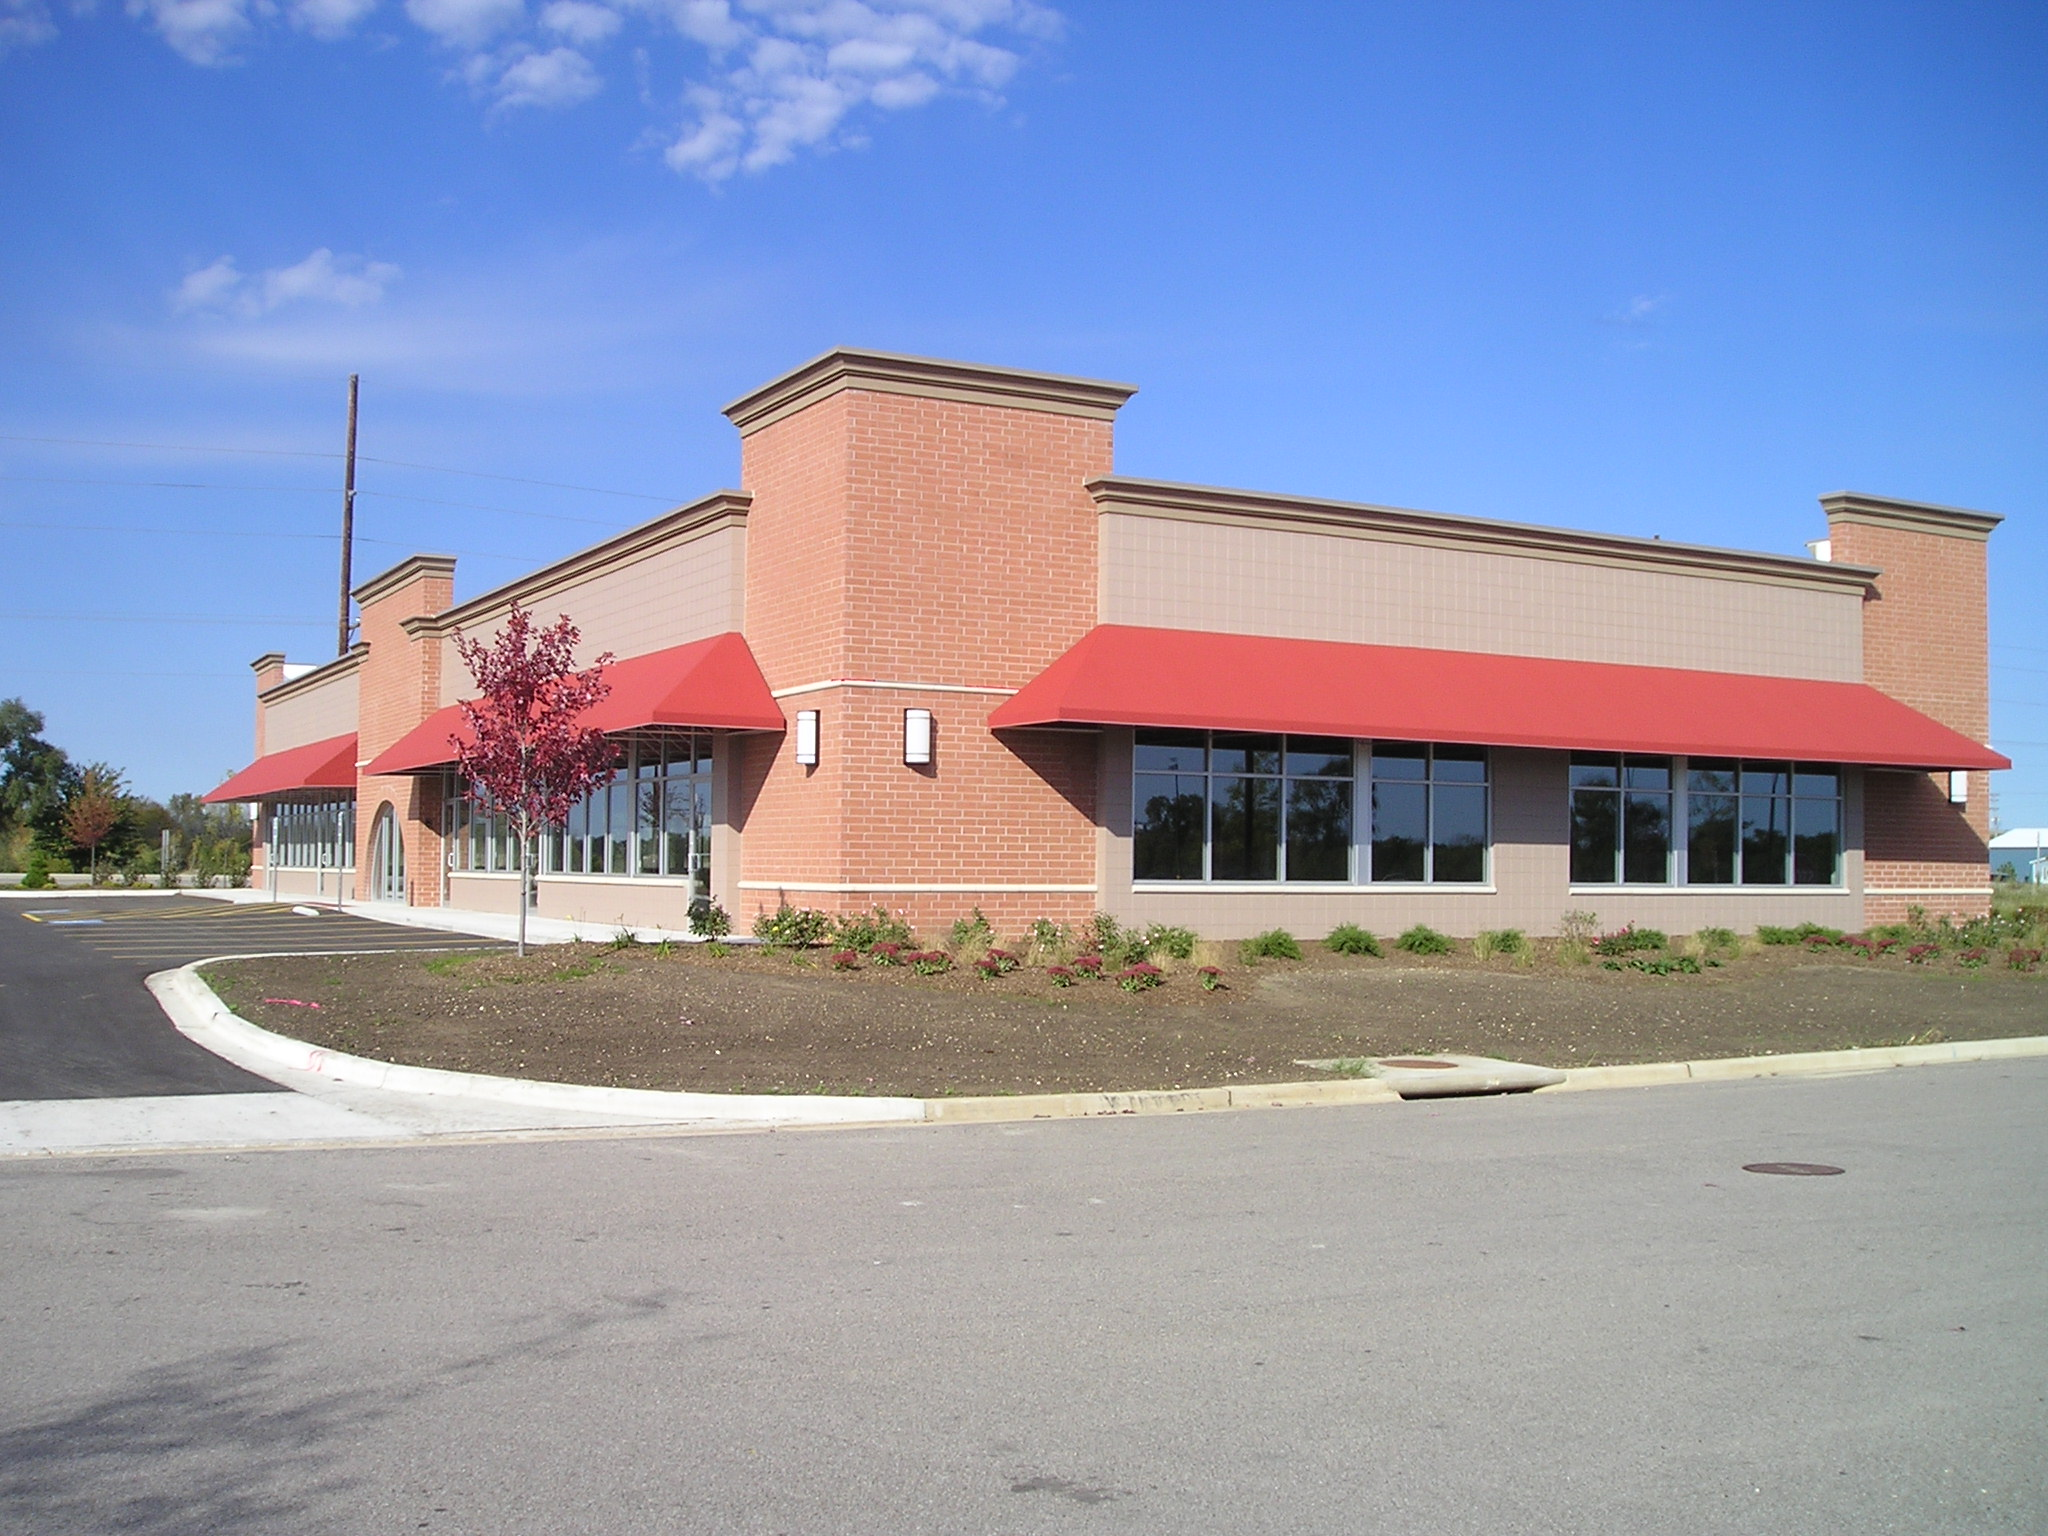 Commercial Construction Project - Rockton Retail Centers Rockford Structures